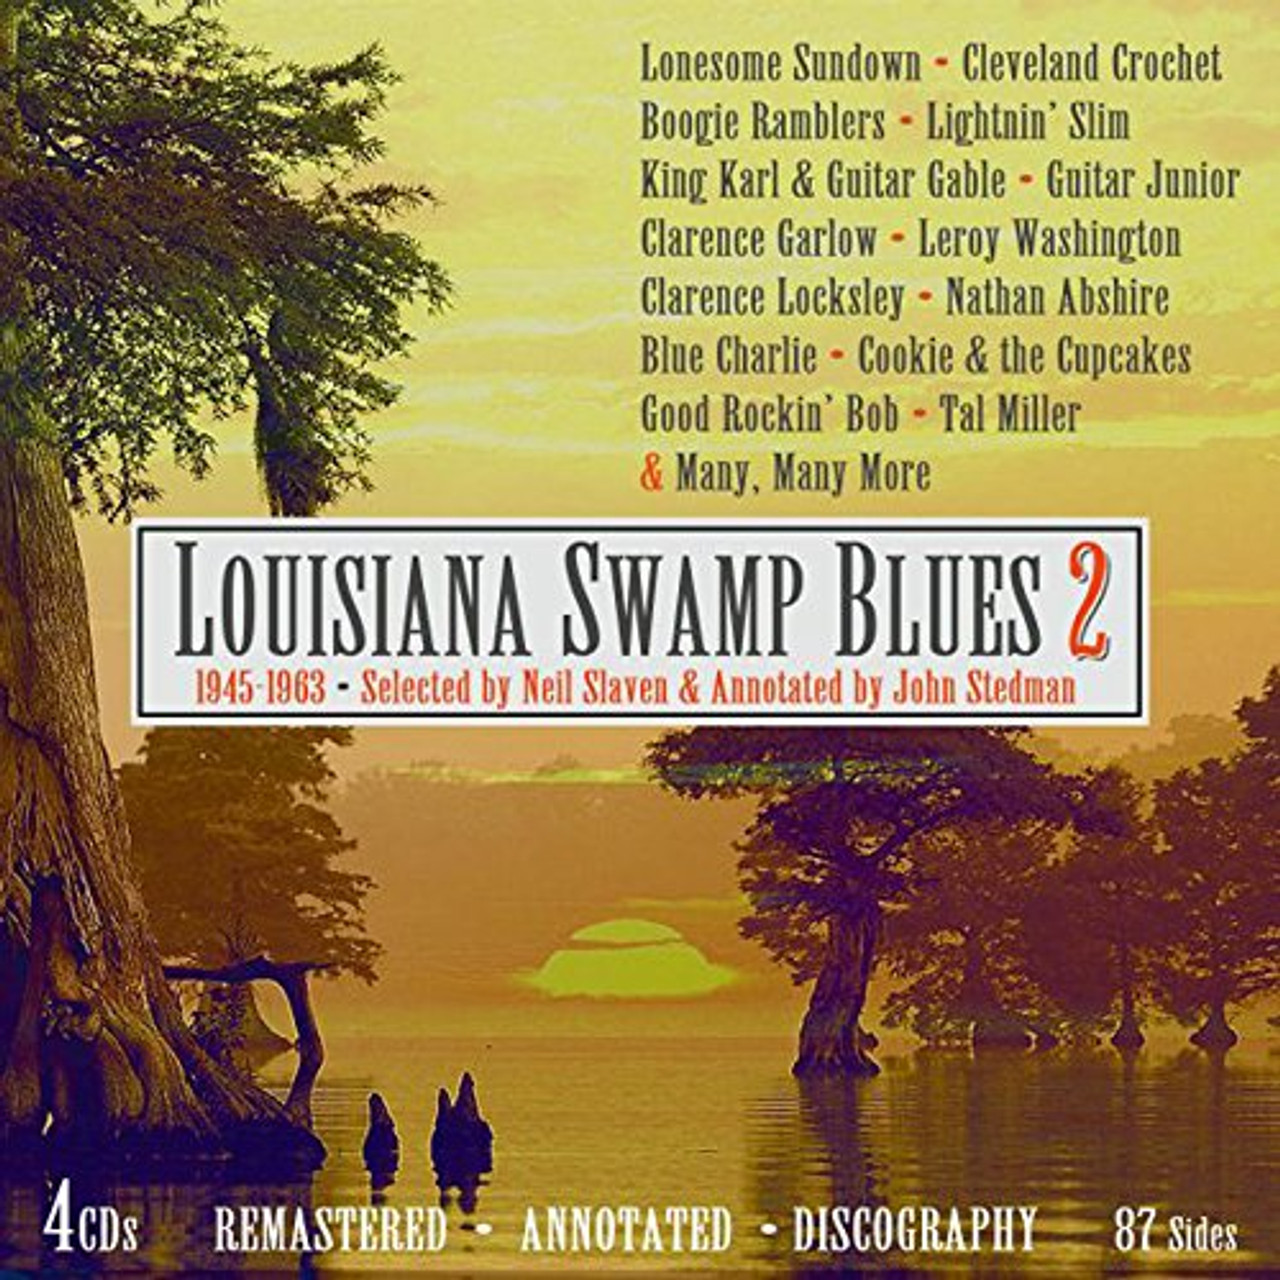 Louisiana Swamp Blues 2 - VARIOUS ARTIST